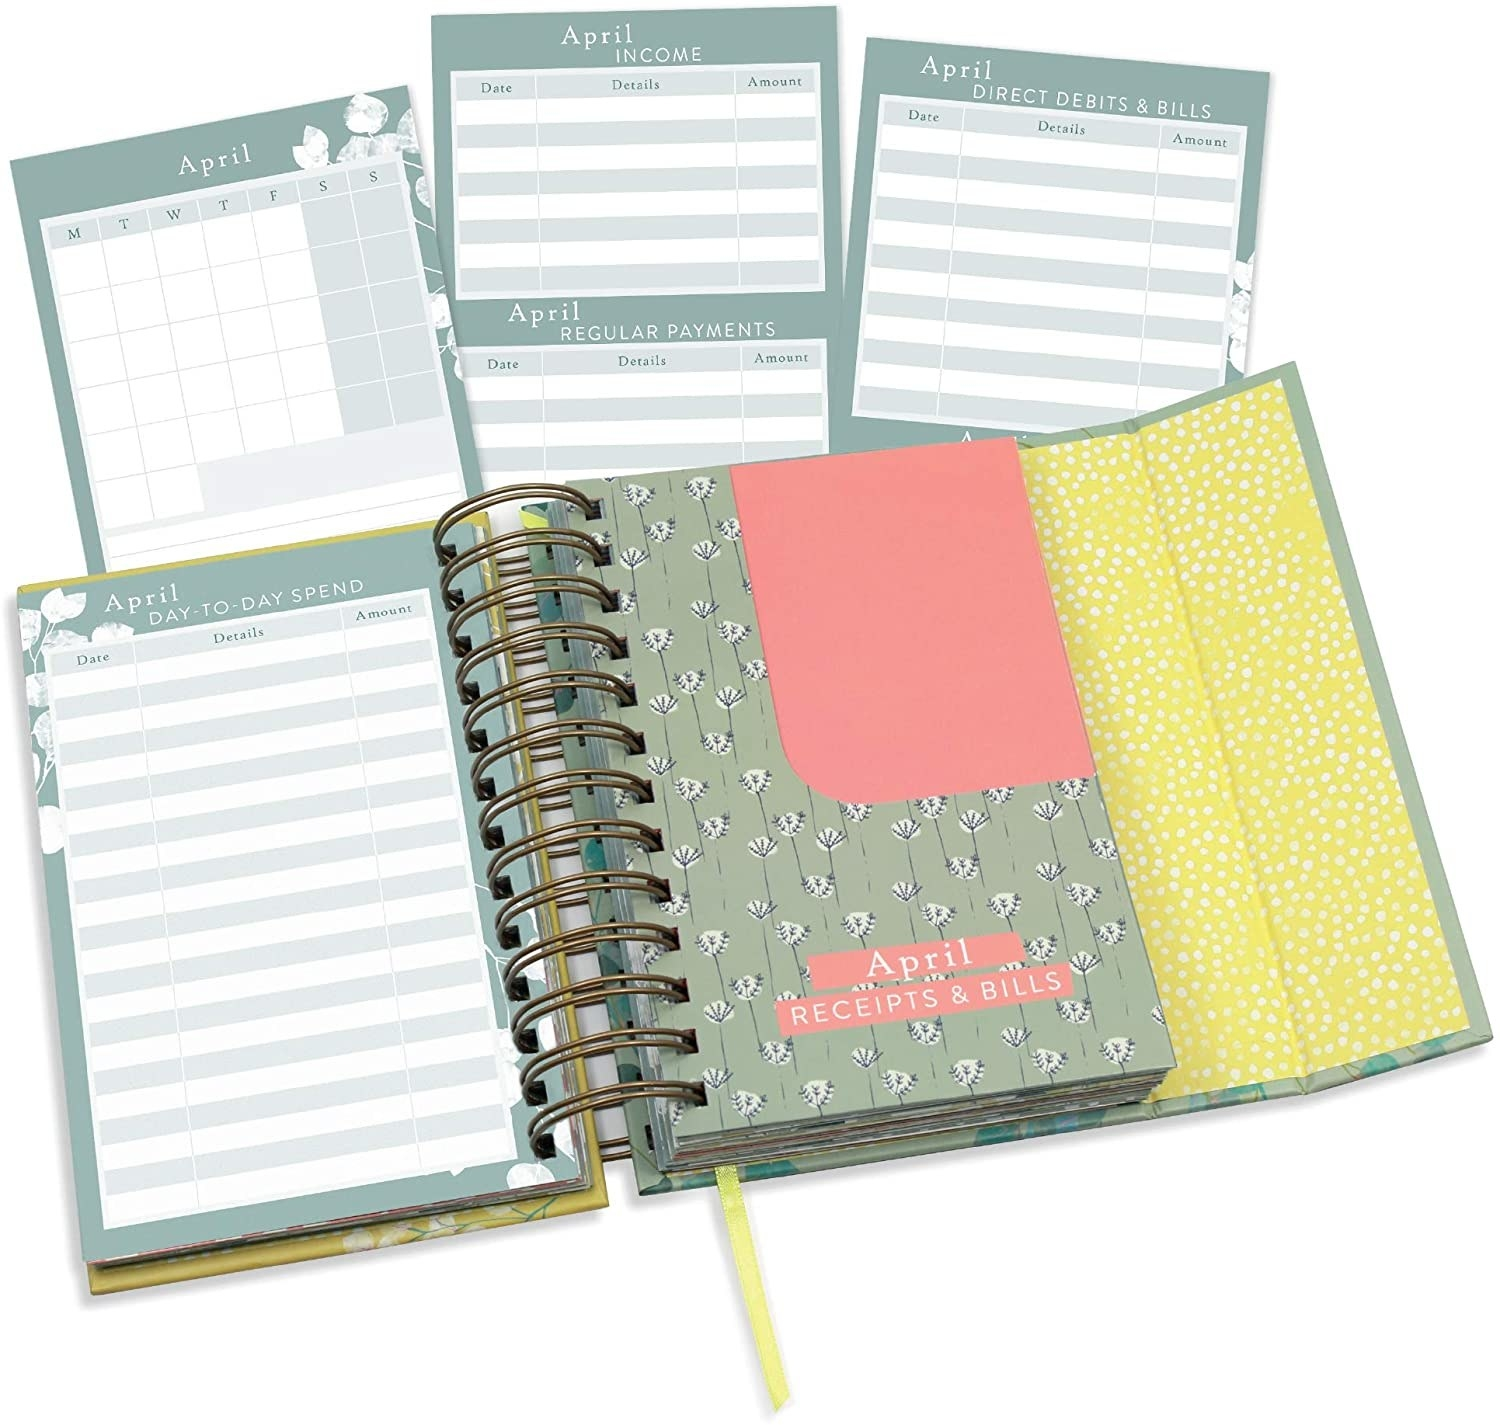 The green floral planner open to show its different pages, including monthly and day-to-day pages, and trackers for income, regular payments, and bills. There's also a pretty floral pocket for monthly receipts and bills